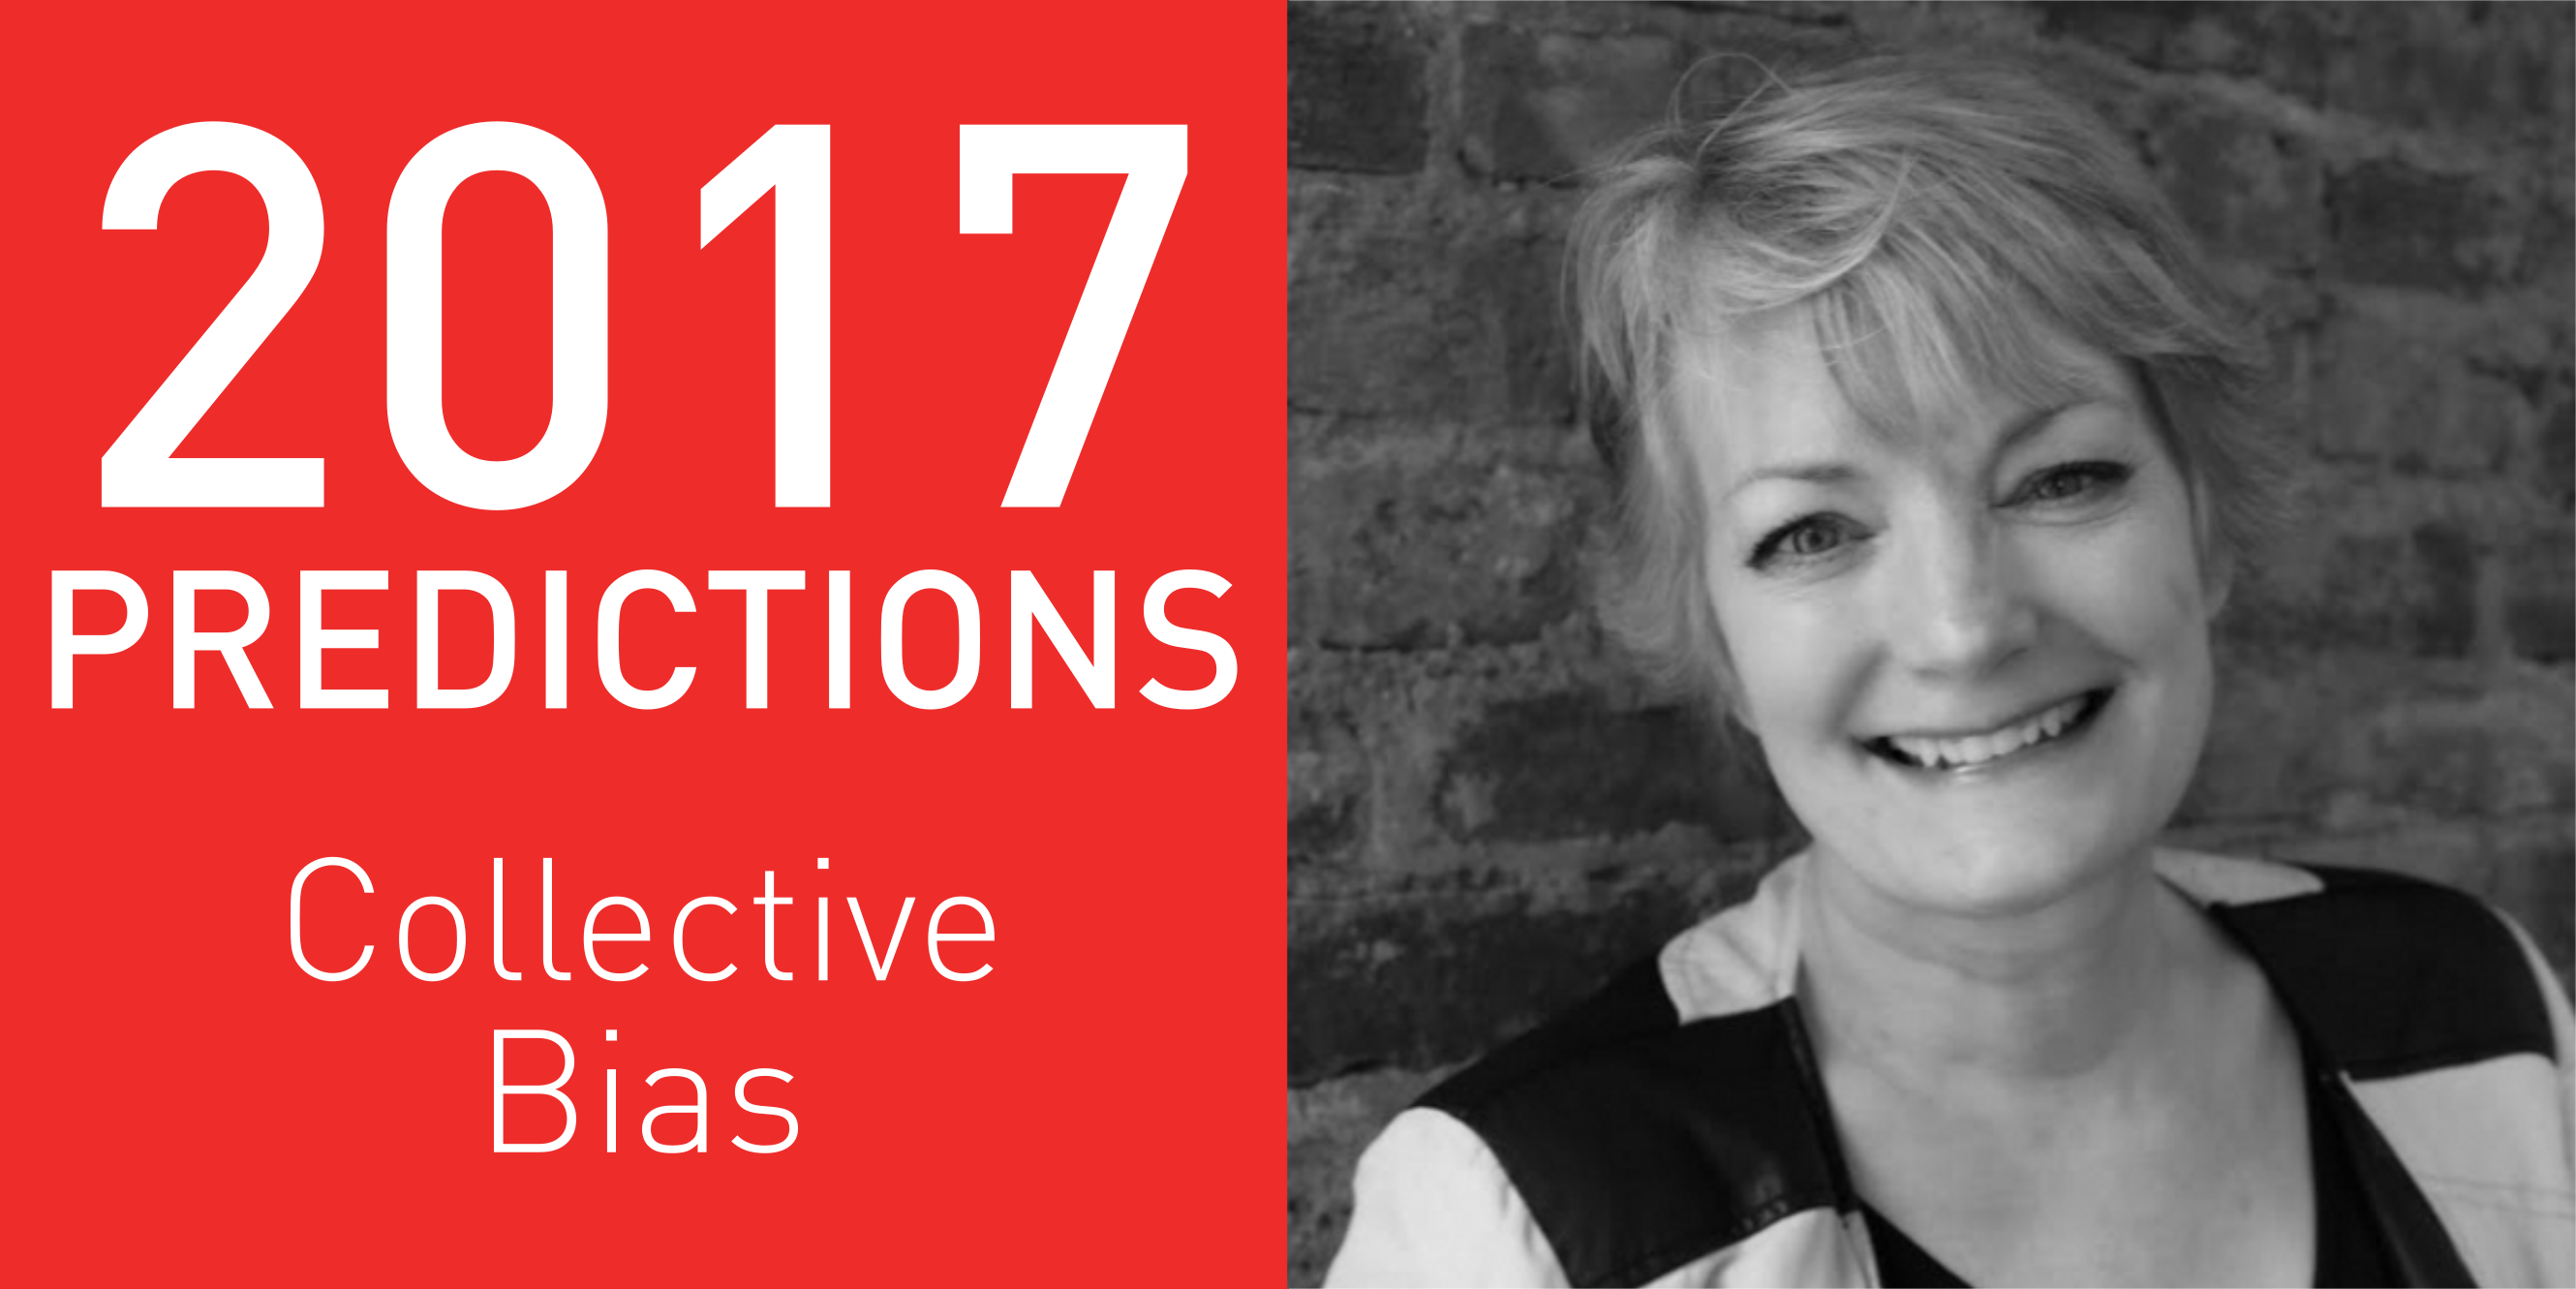 2017 Predictions: Collective Bias